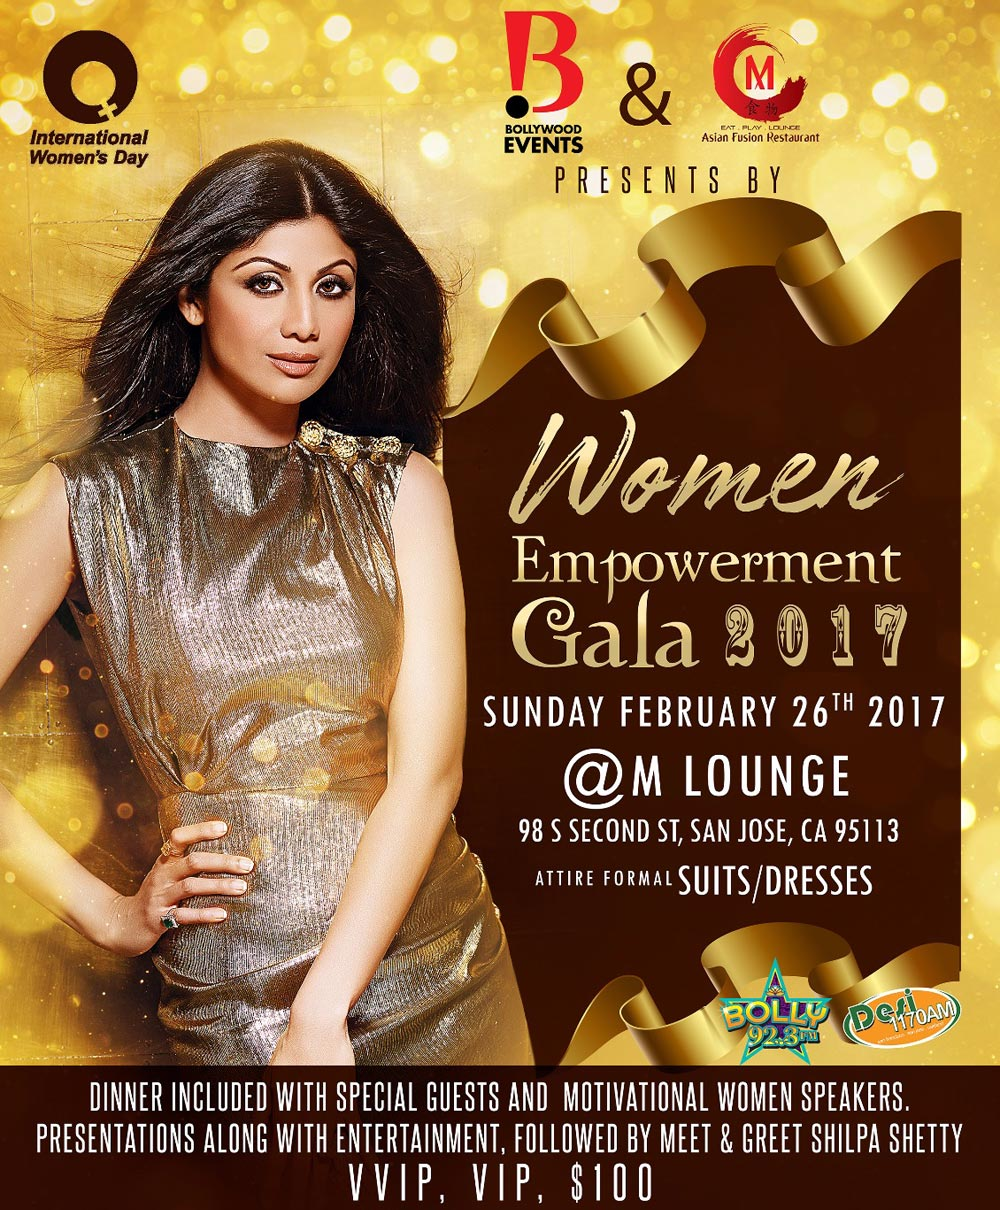 Once in a Lifetime Opportunity - An Evening with SHILPA SHETTY Up Close and Personal in Bay Area